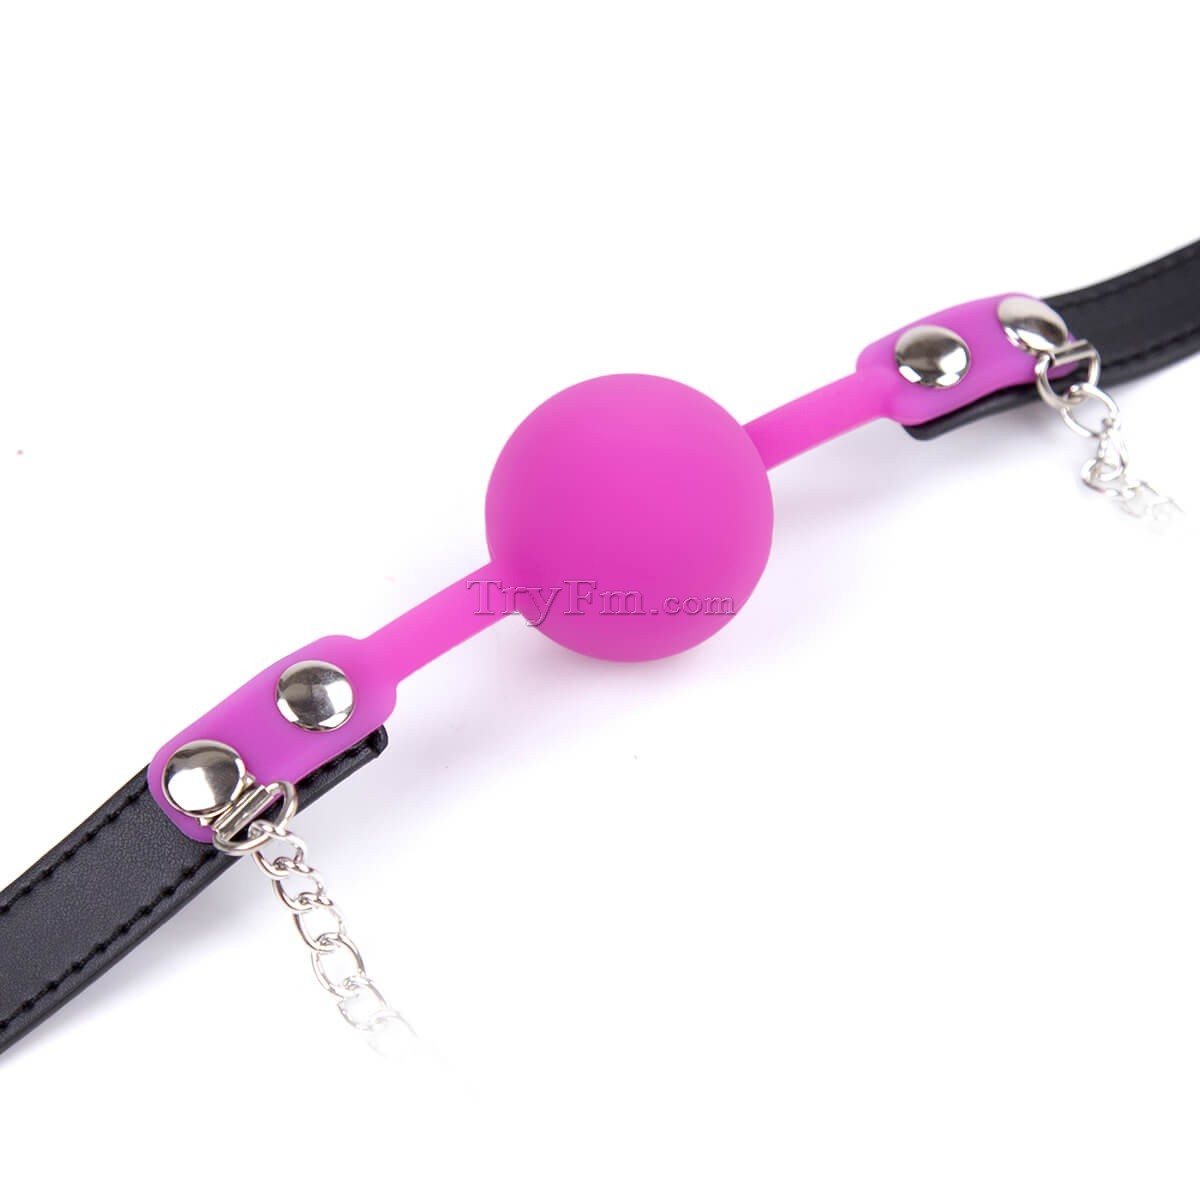 9-Ball-gag-with-nipple-clamp-4.jpg